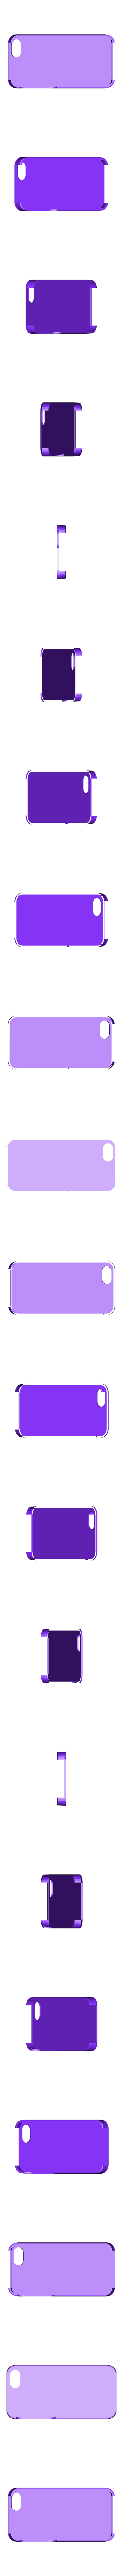 Coque iphone 5 5s SE.stl Download free STL file IPhone case 5 • 3D printable design, jujulm72130